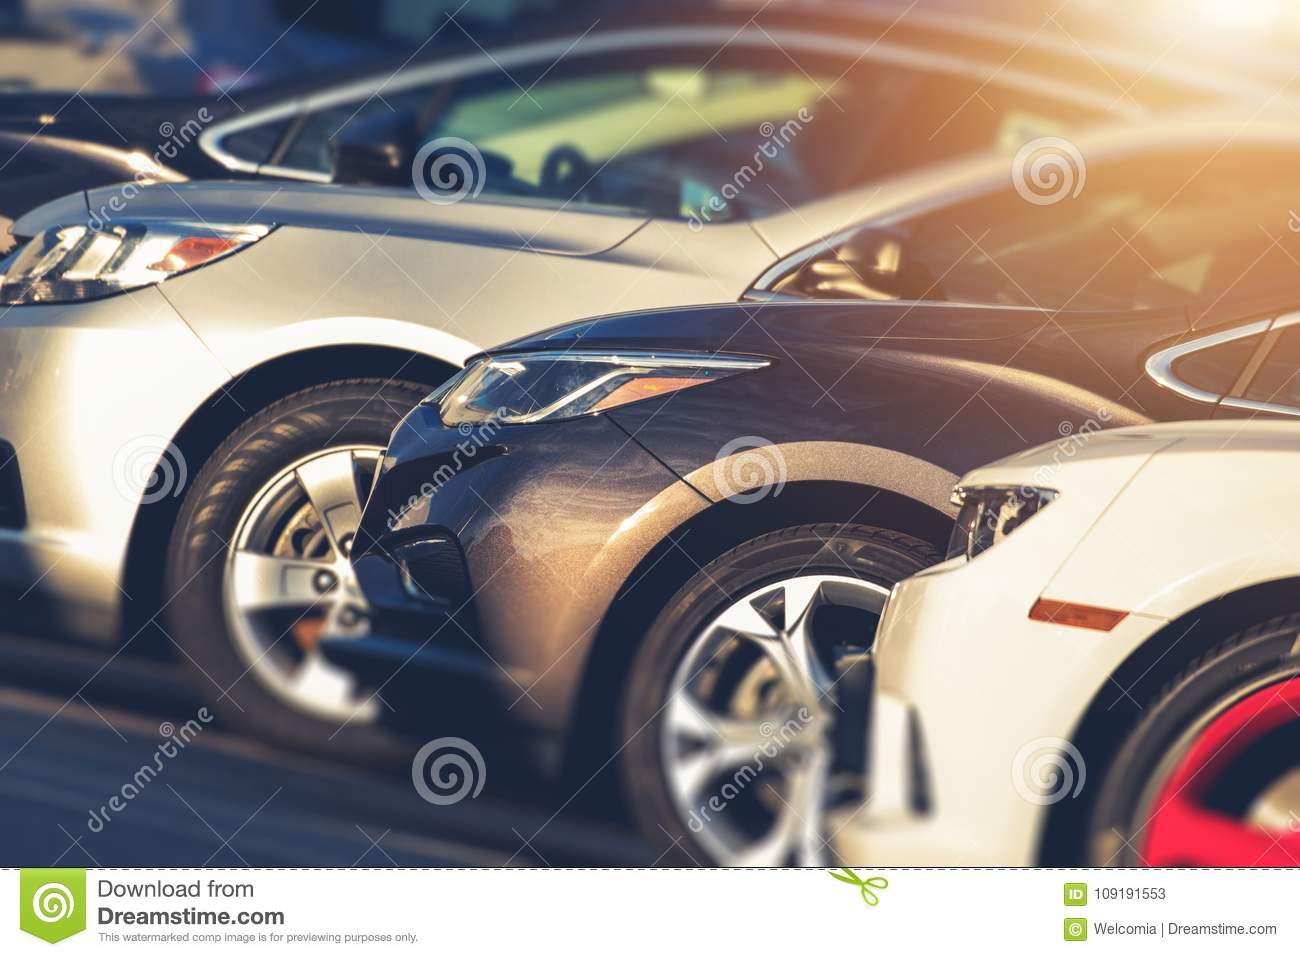 Pre Owned Cars >> Pre Owned Cars For Sale Stock Image Image Of Transportation